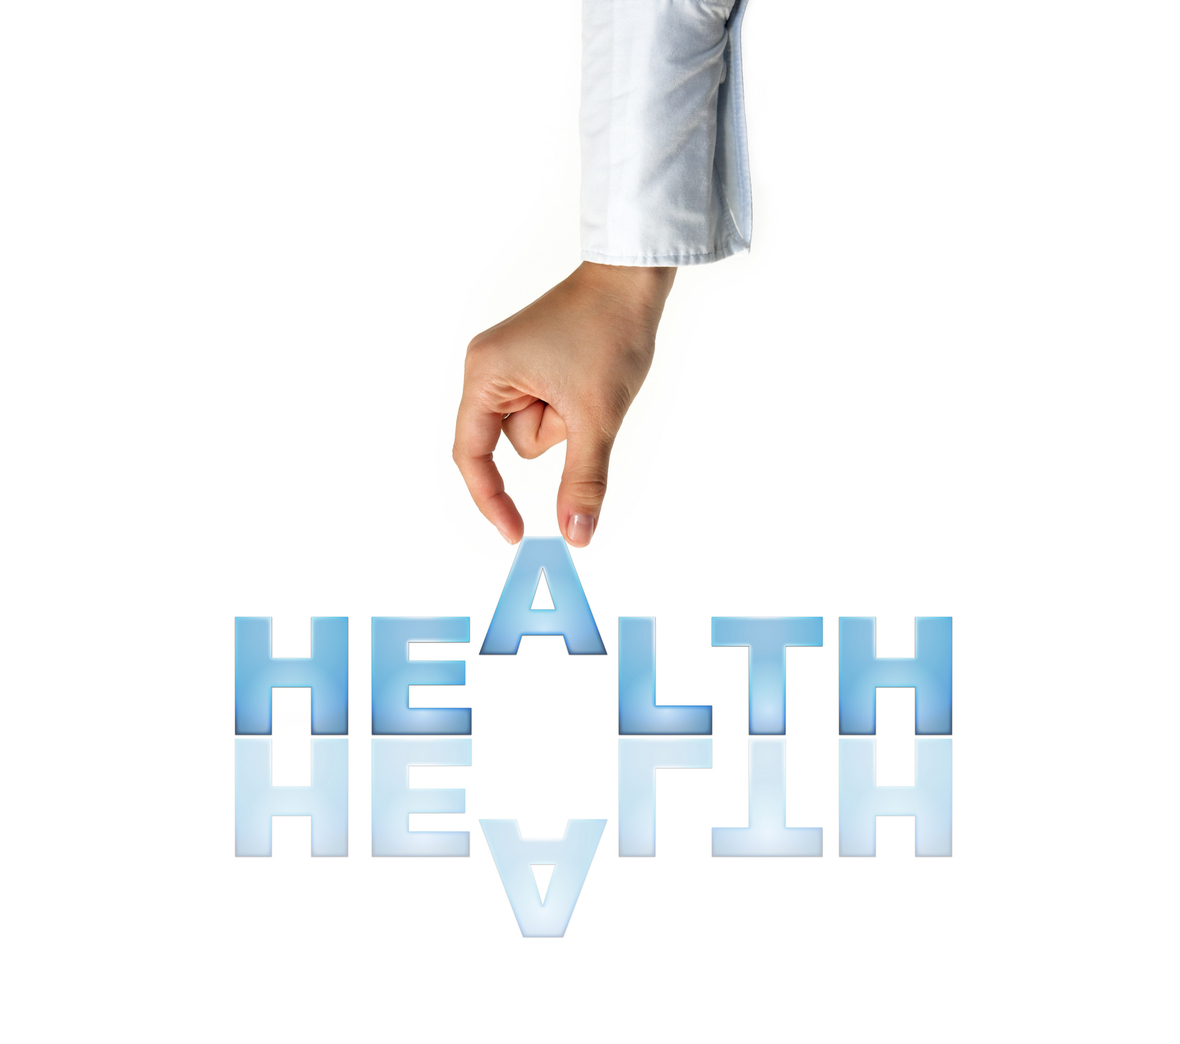 A_in_health